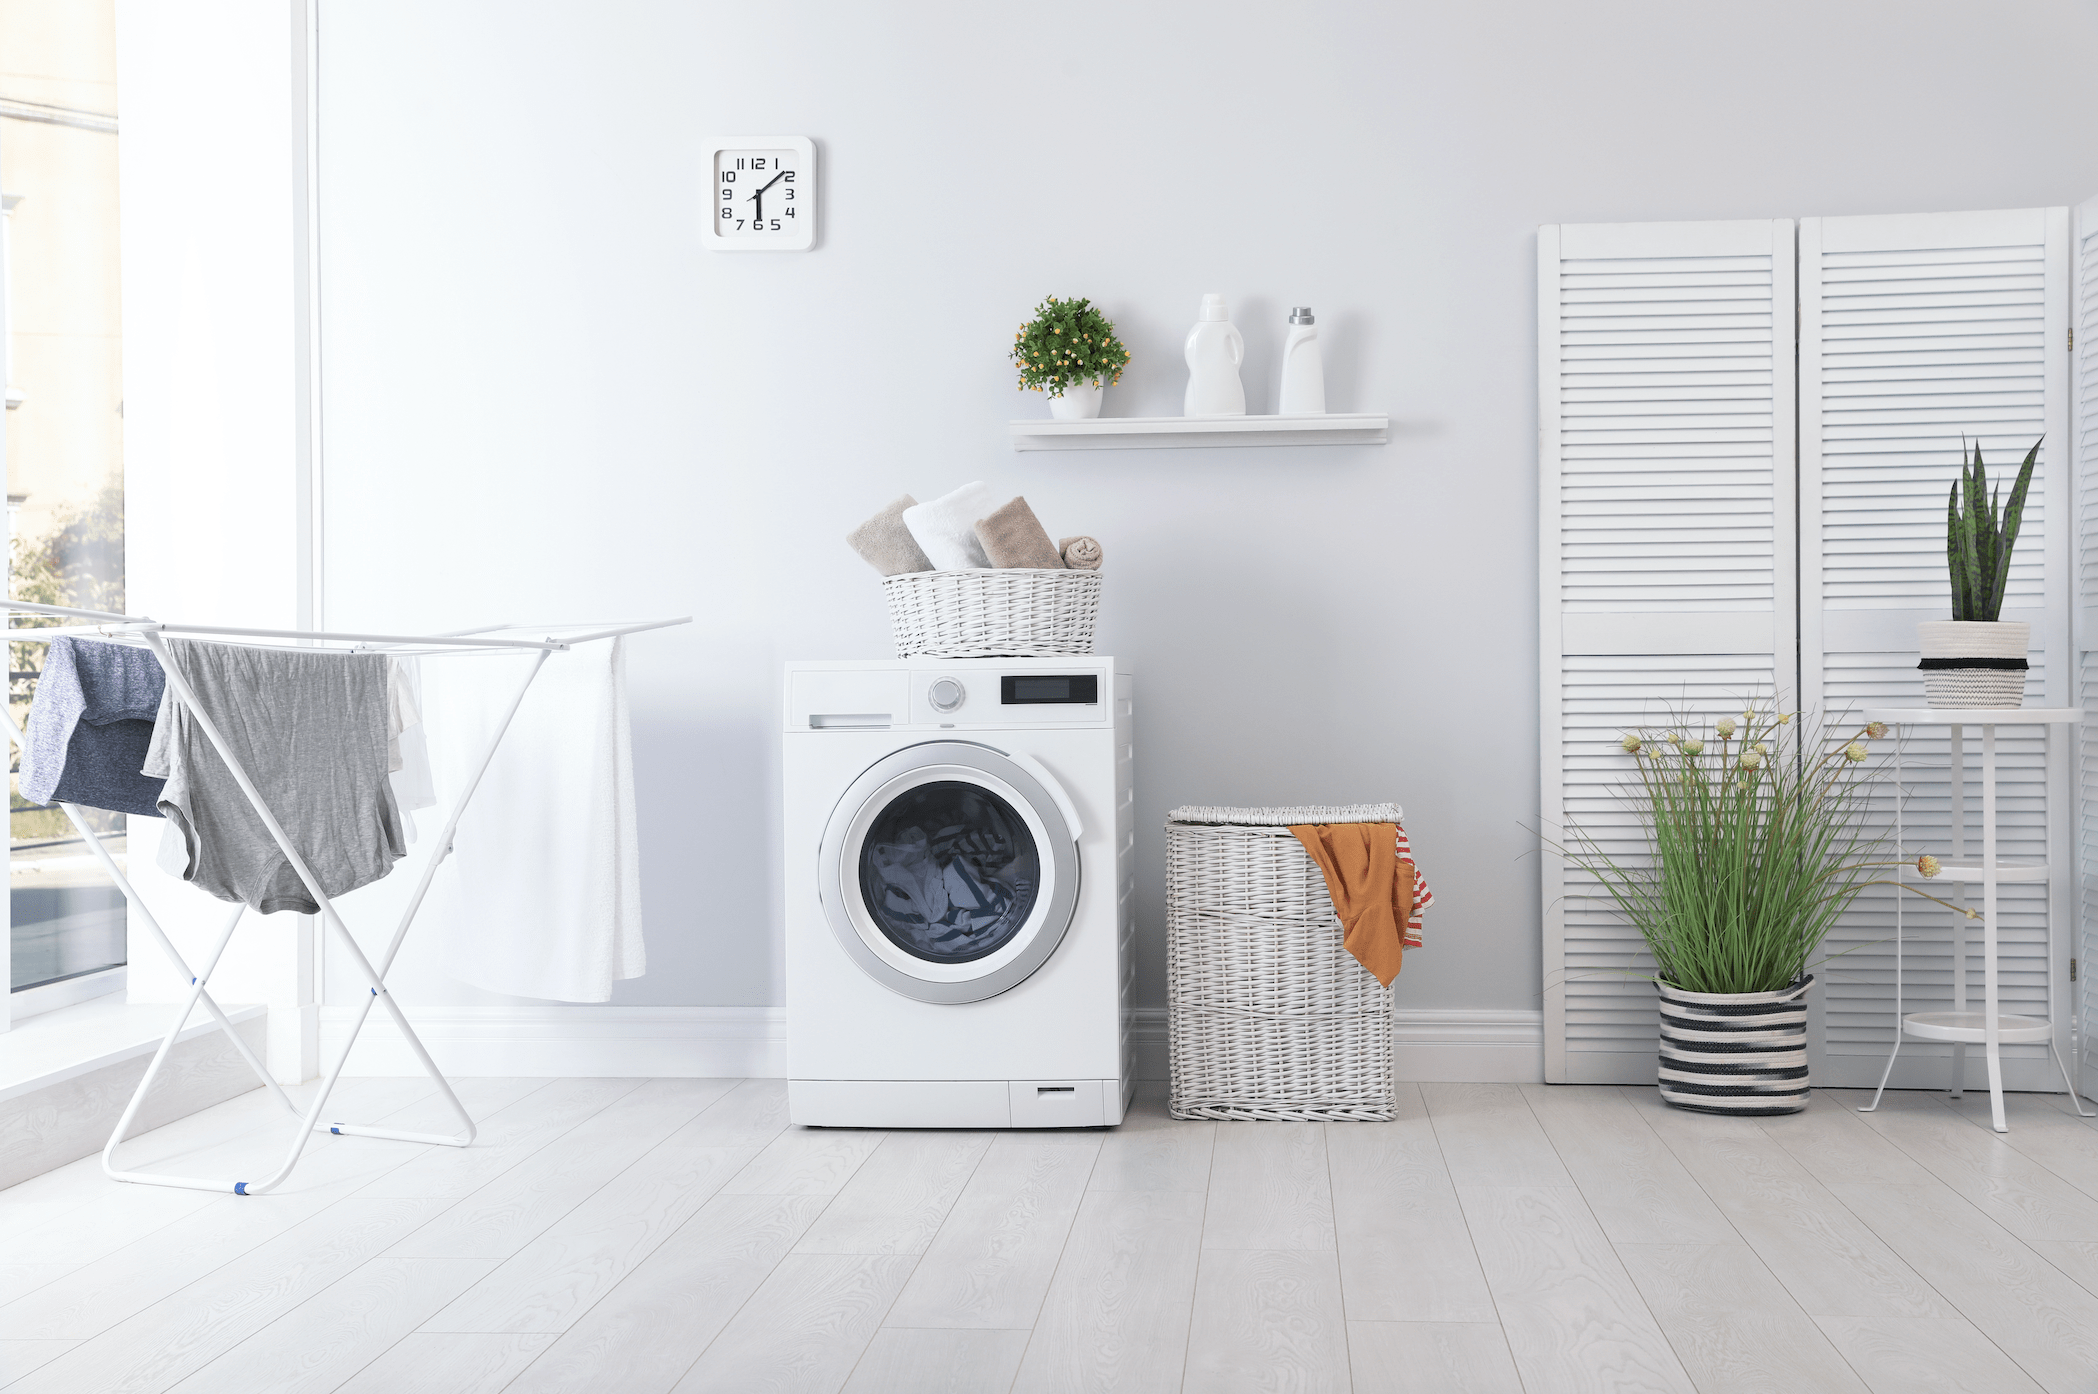 A detergent quantity guide for home laundry: How much is too much?